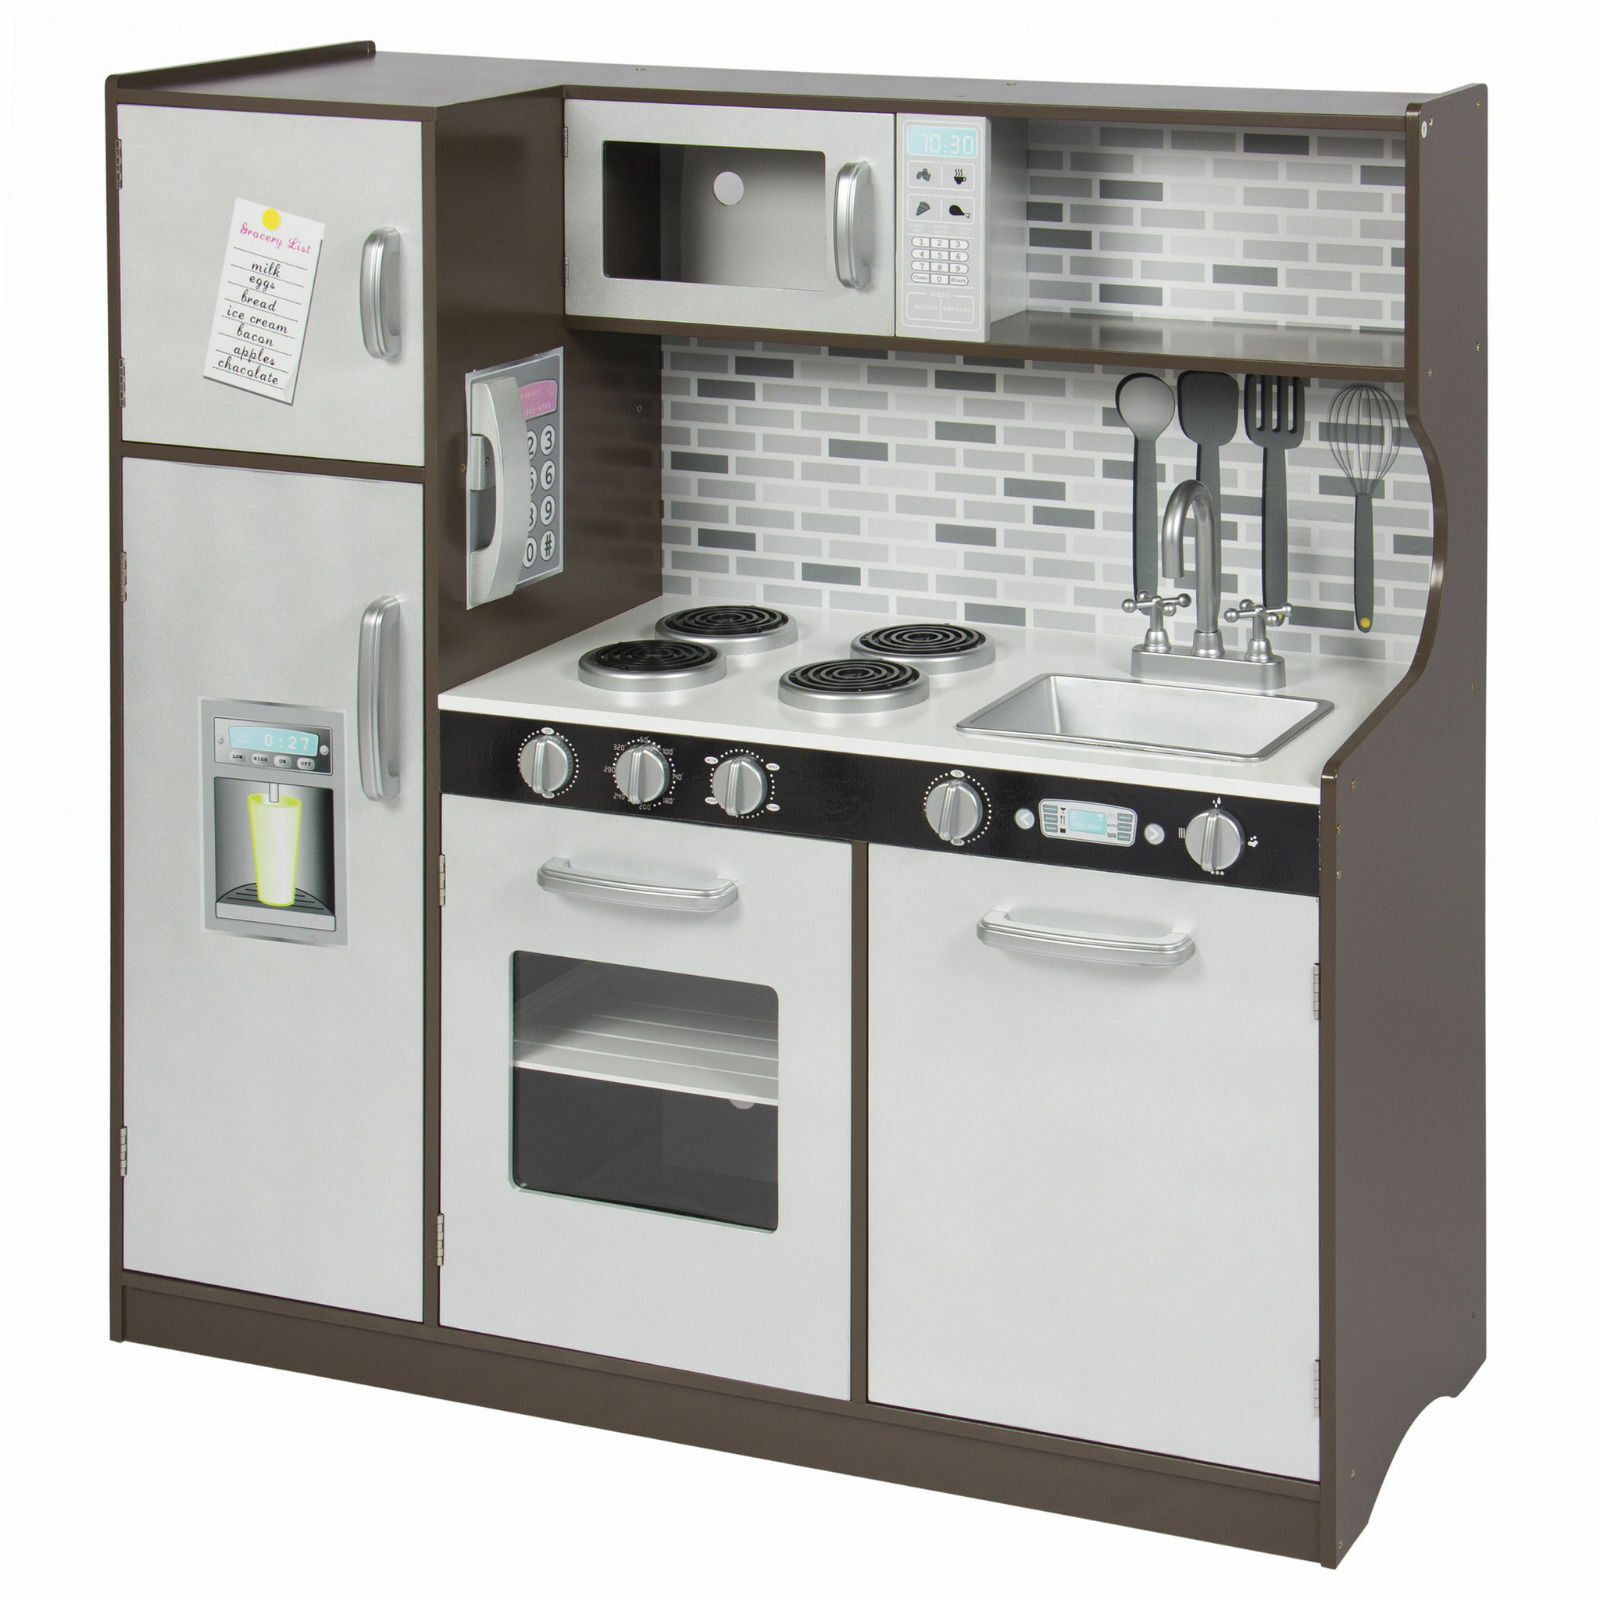 What Are the Best Toy Kitchens  eBay